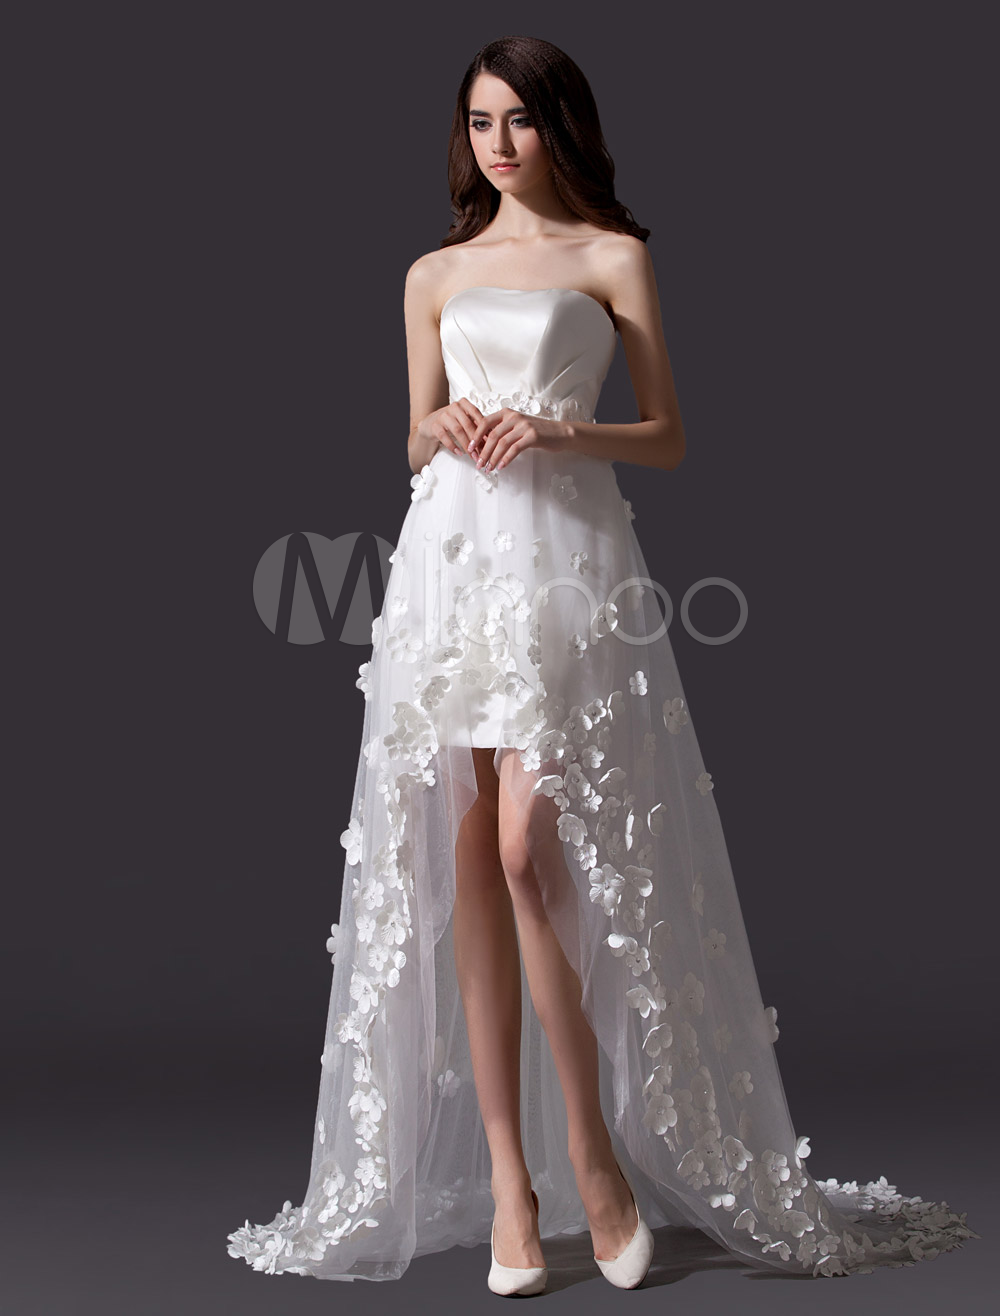 Ivory strapless aline flowers applique high low wedding dress